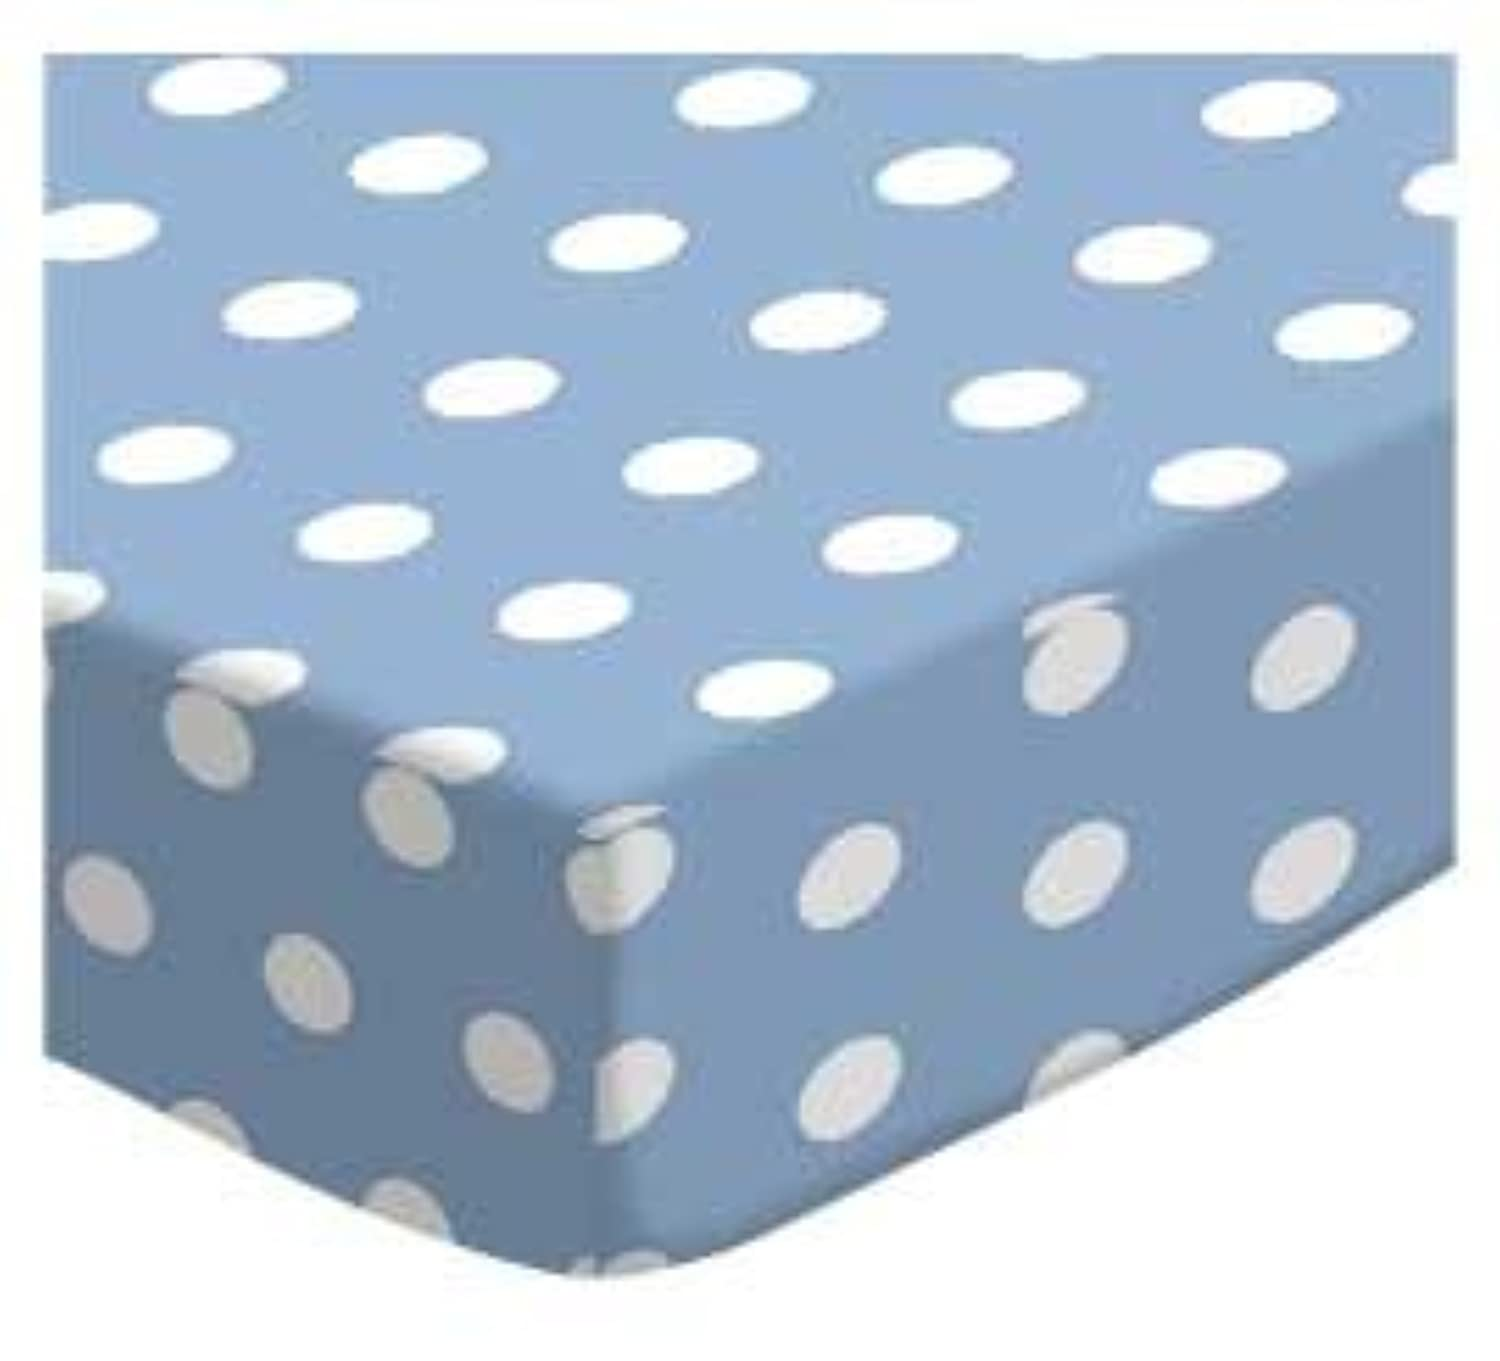 SheetWorld Fitted Cradle Sheet - Polka Dots Blue - Made In USA by sheetworld